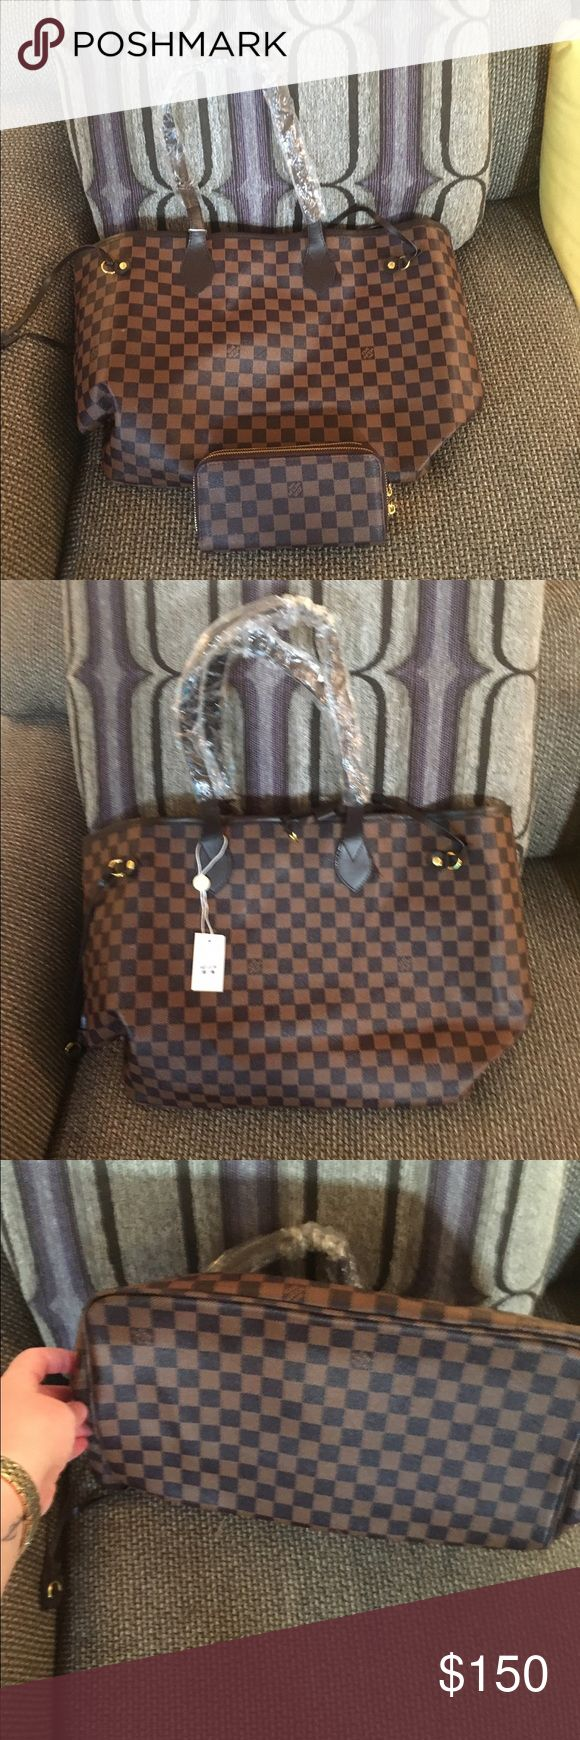 Louis Vuitton large checkered bag . Brand new Brand new , handles are still wrapped . Comes with wallet . Just too big for my liking Louis Vuitton Bags Shoulder Bags